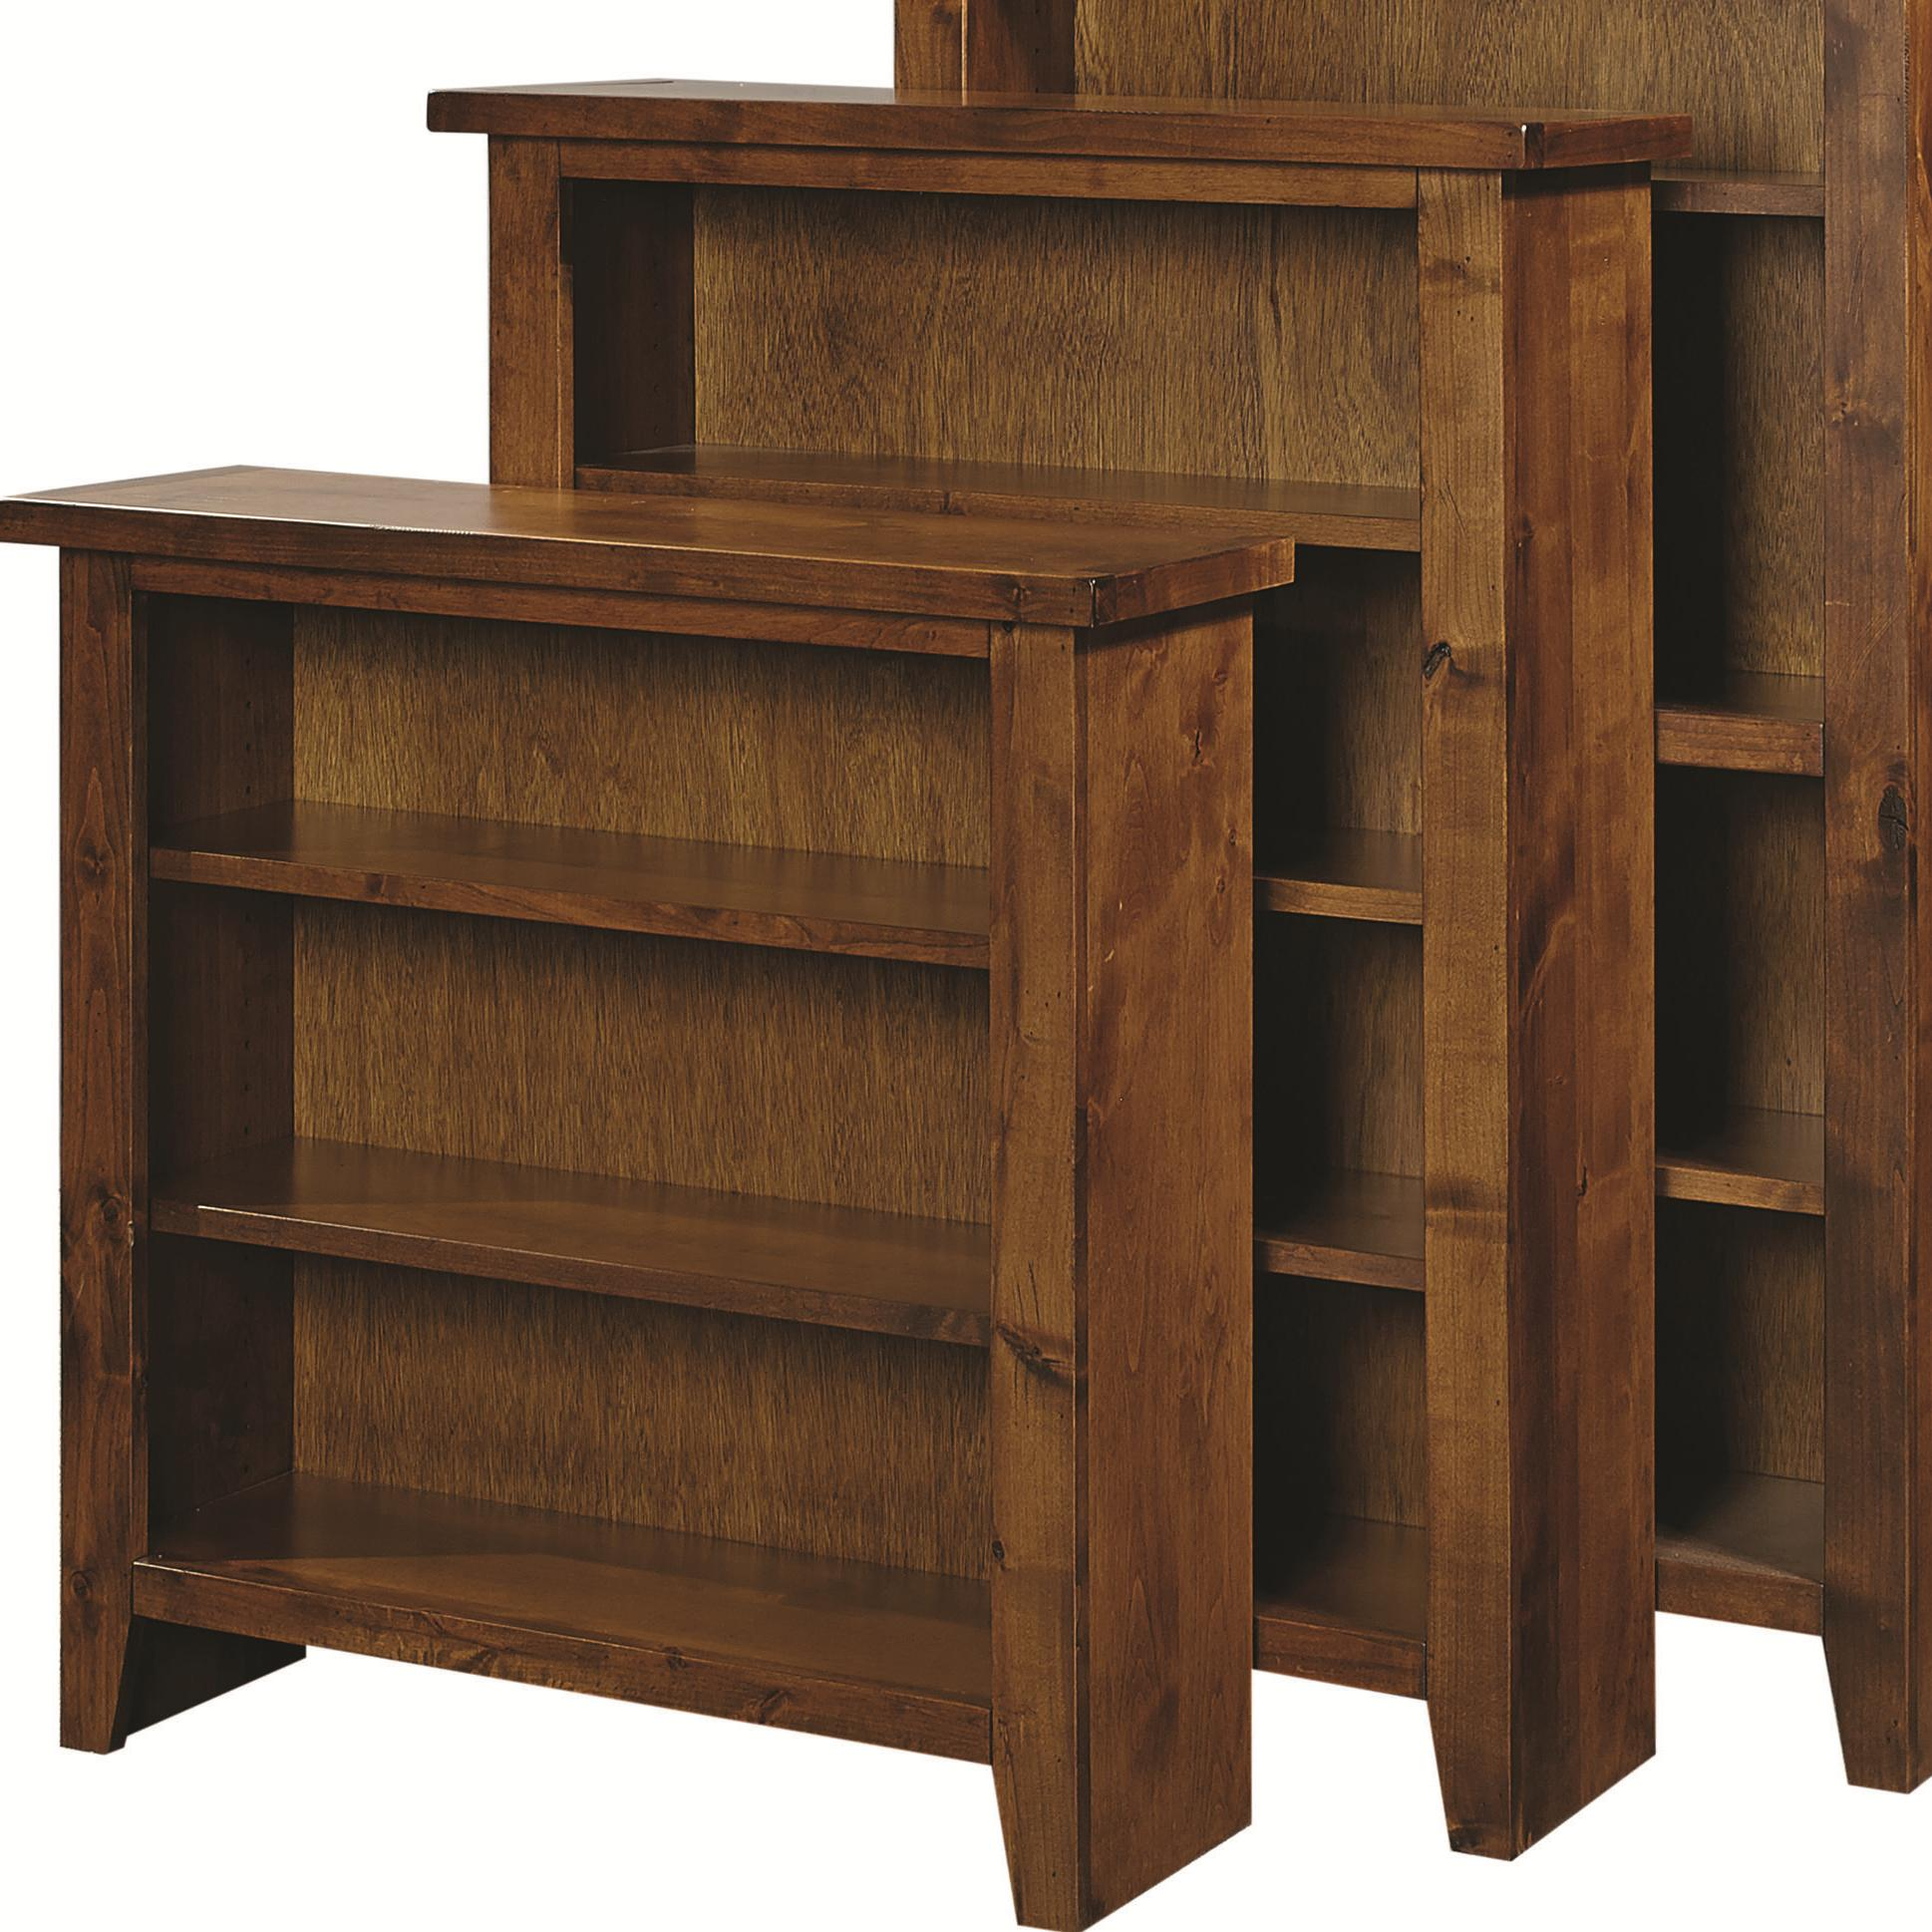 """Alder Grove Bookcase 48"""" Height with 3 Shelves by Aspenhome at Fashion Furniture"""